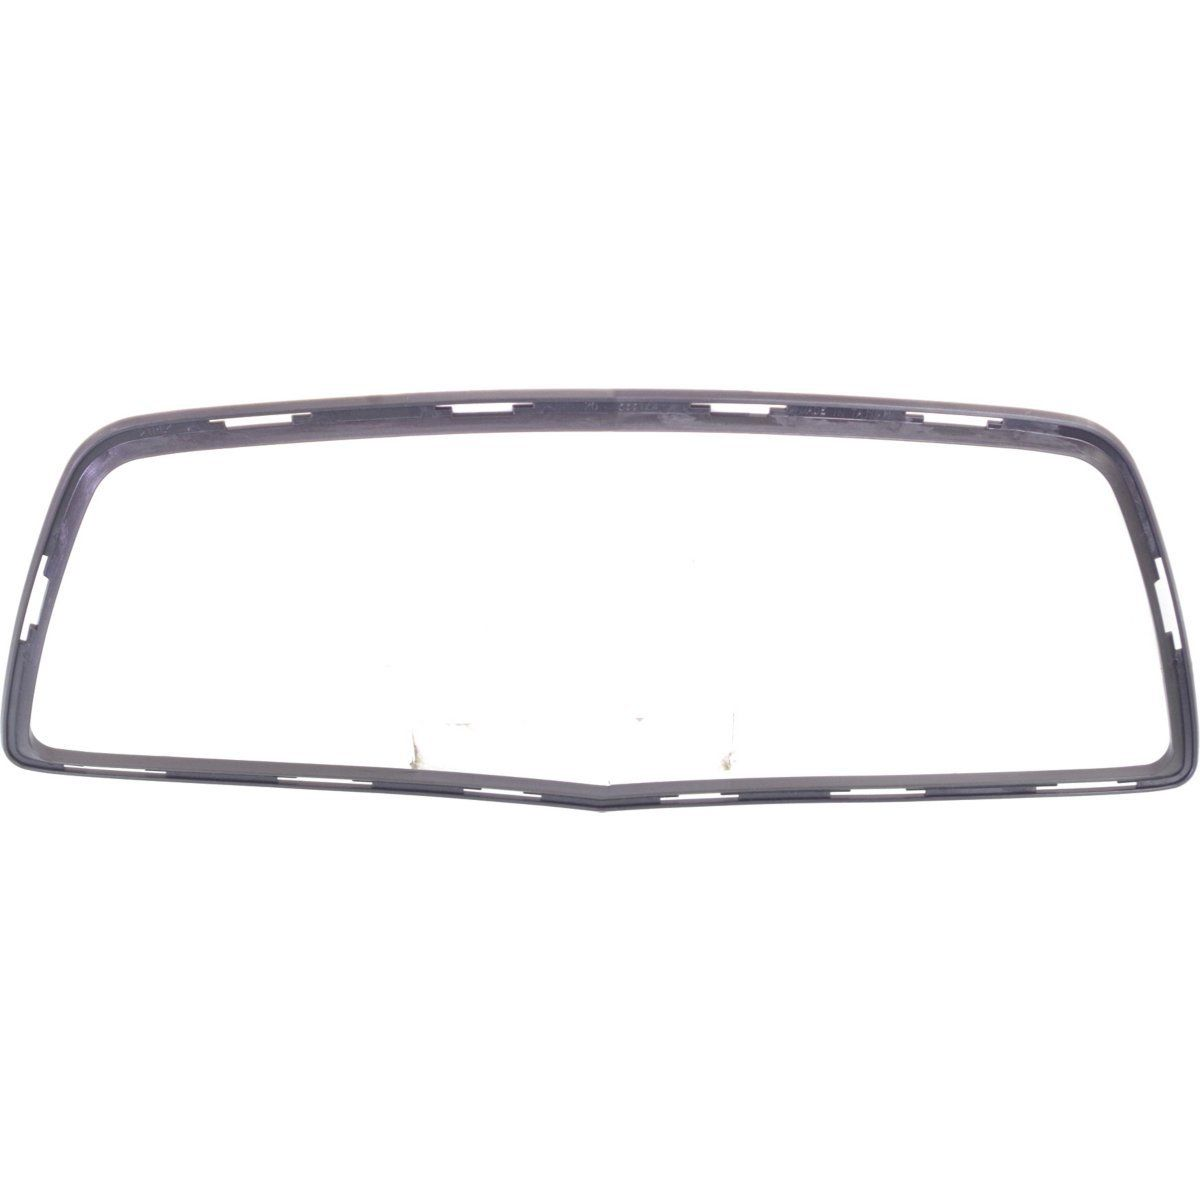 Bumper Filler For 2011-2015 Cadillac CTS Rear